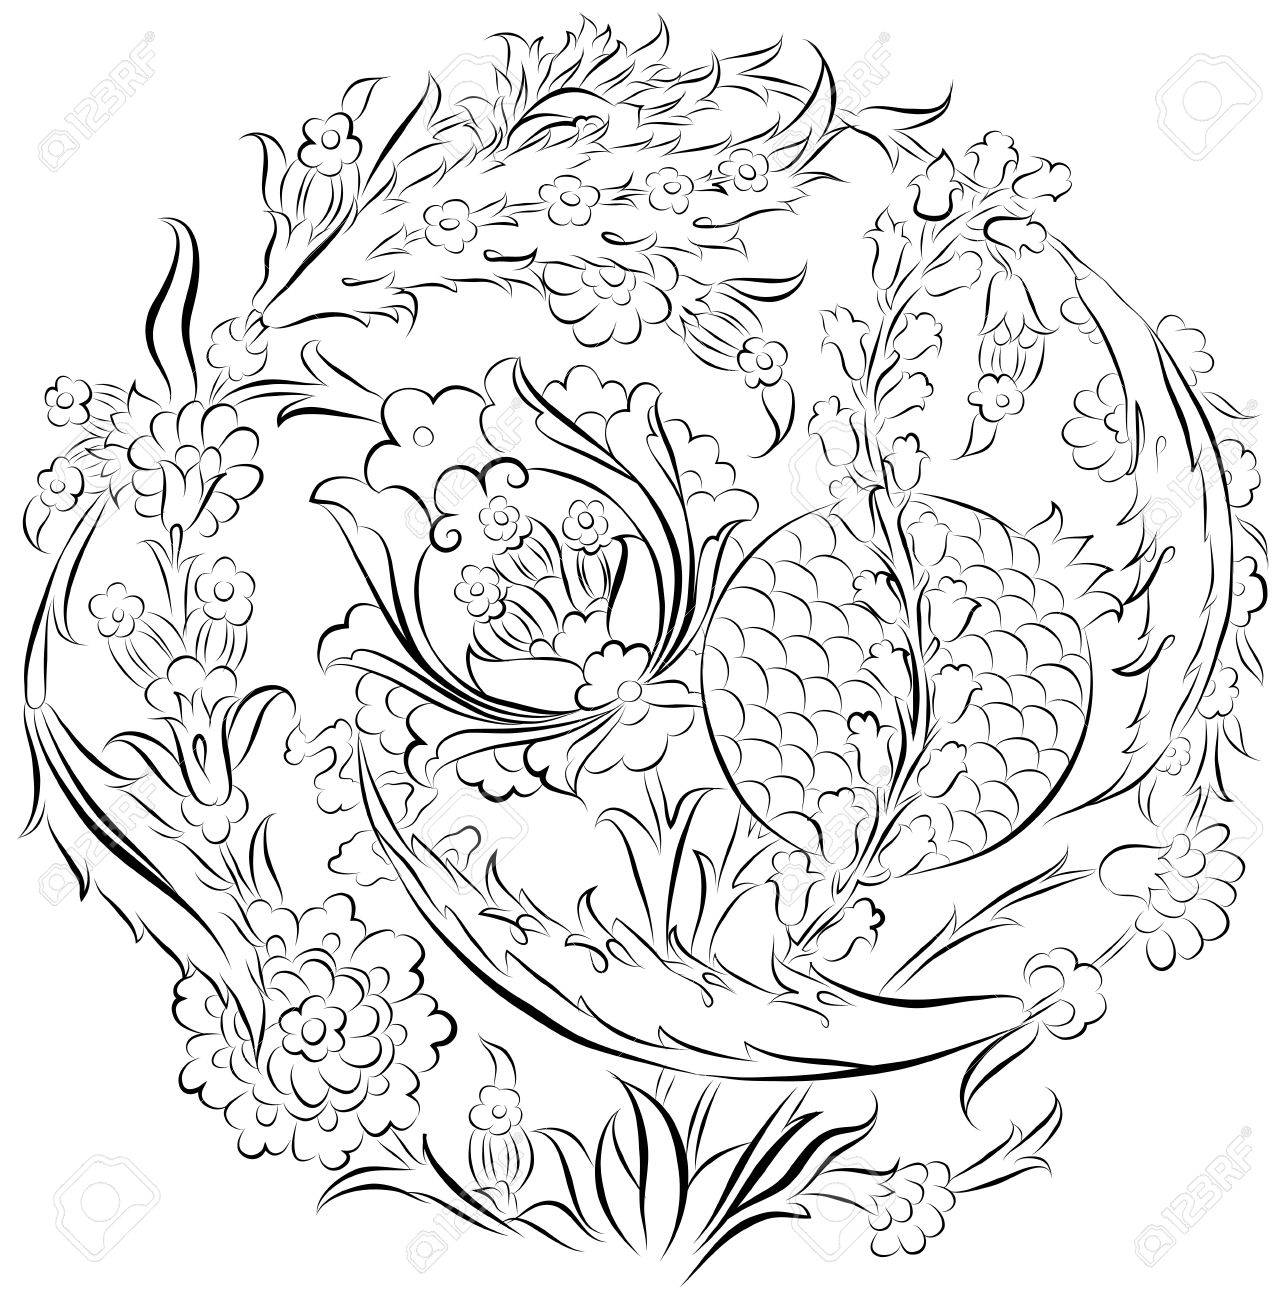 1286x1300 Floral Ornament Drawing In A Circular Composition With Stylized